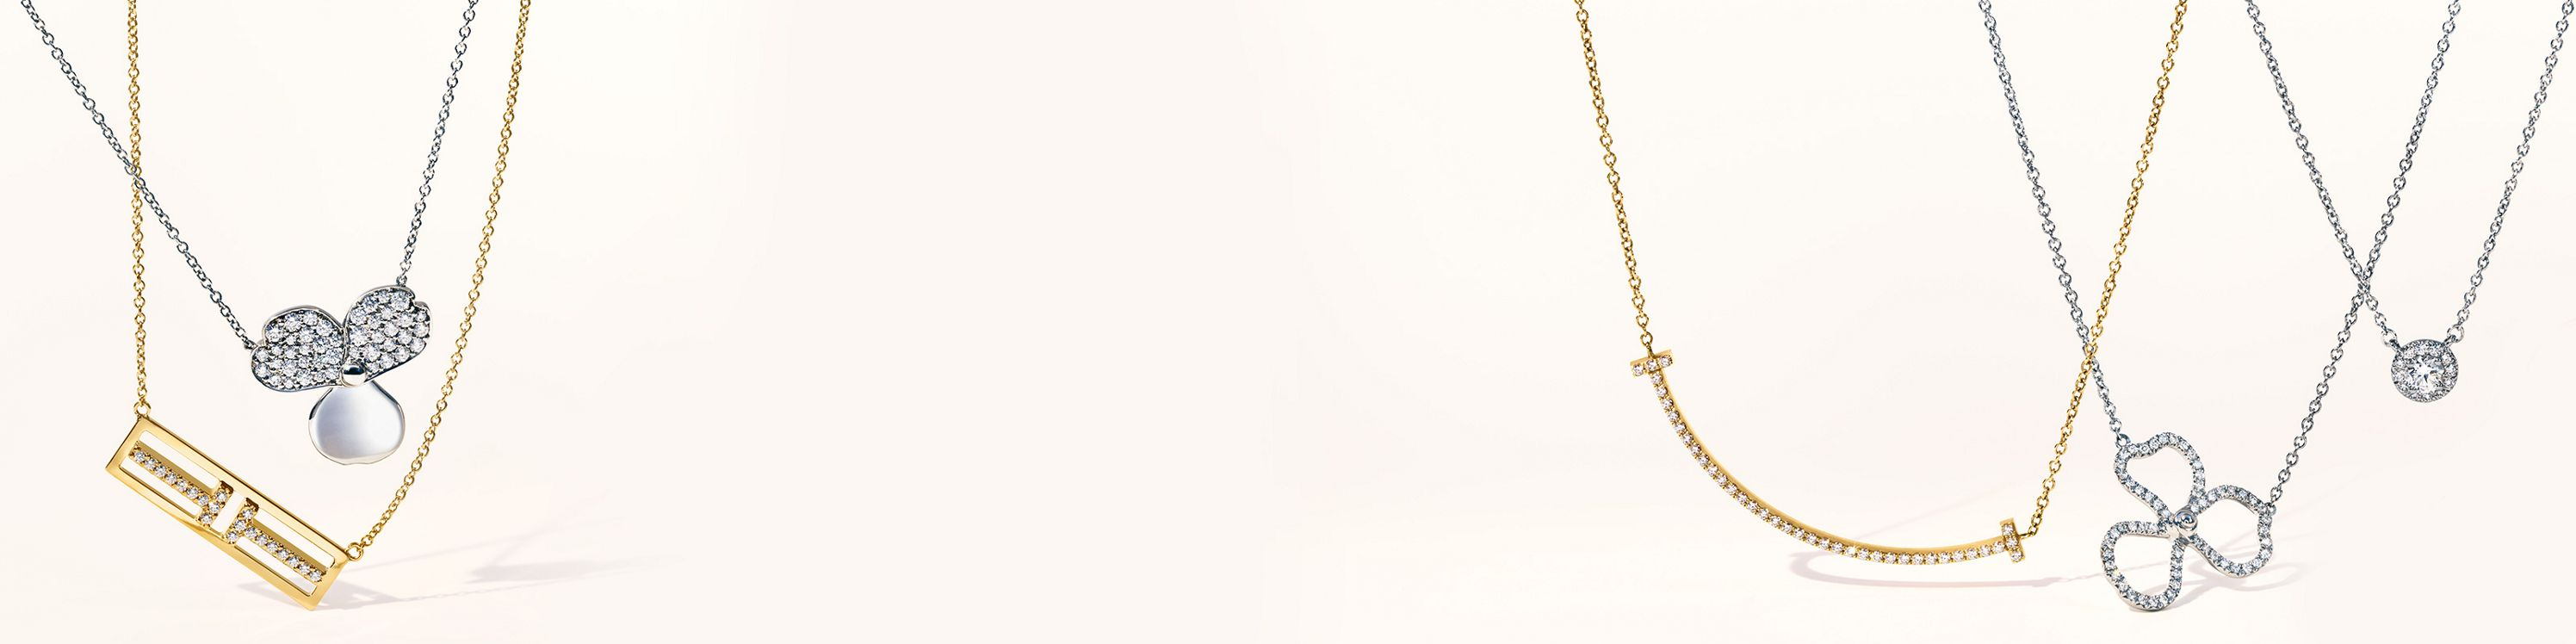 Shop Tiffany & Co. Necklaces & Pendants